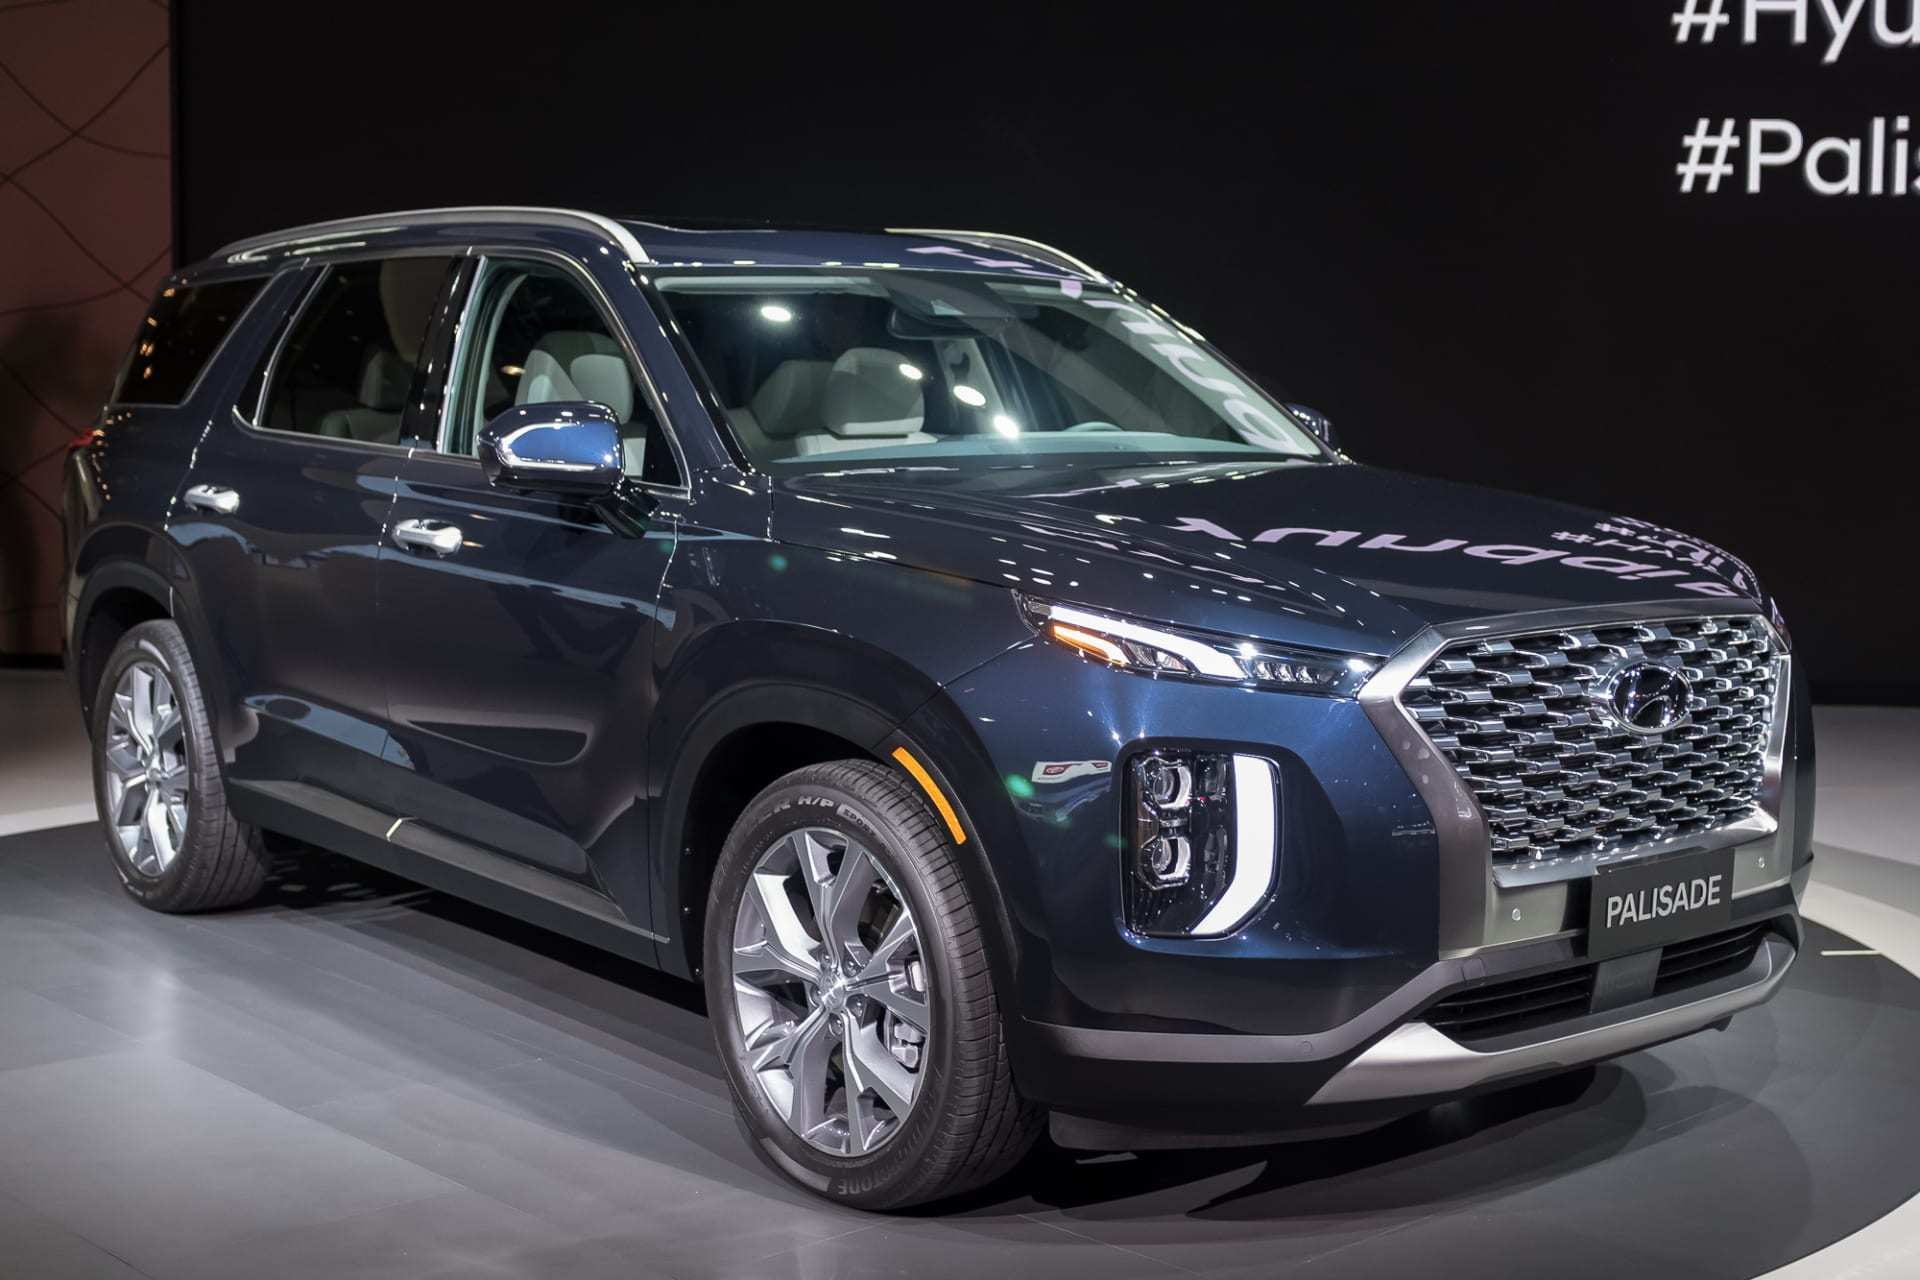 22 New Hyundai New Suv 2020 Palisade Price Spy Shoot